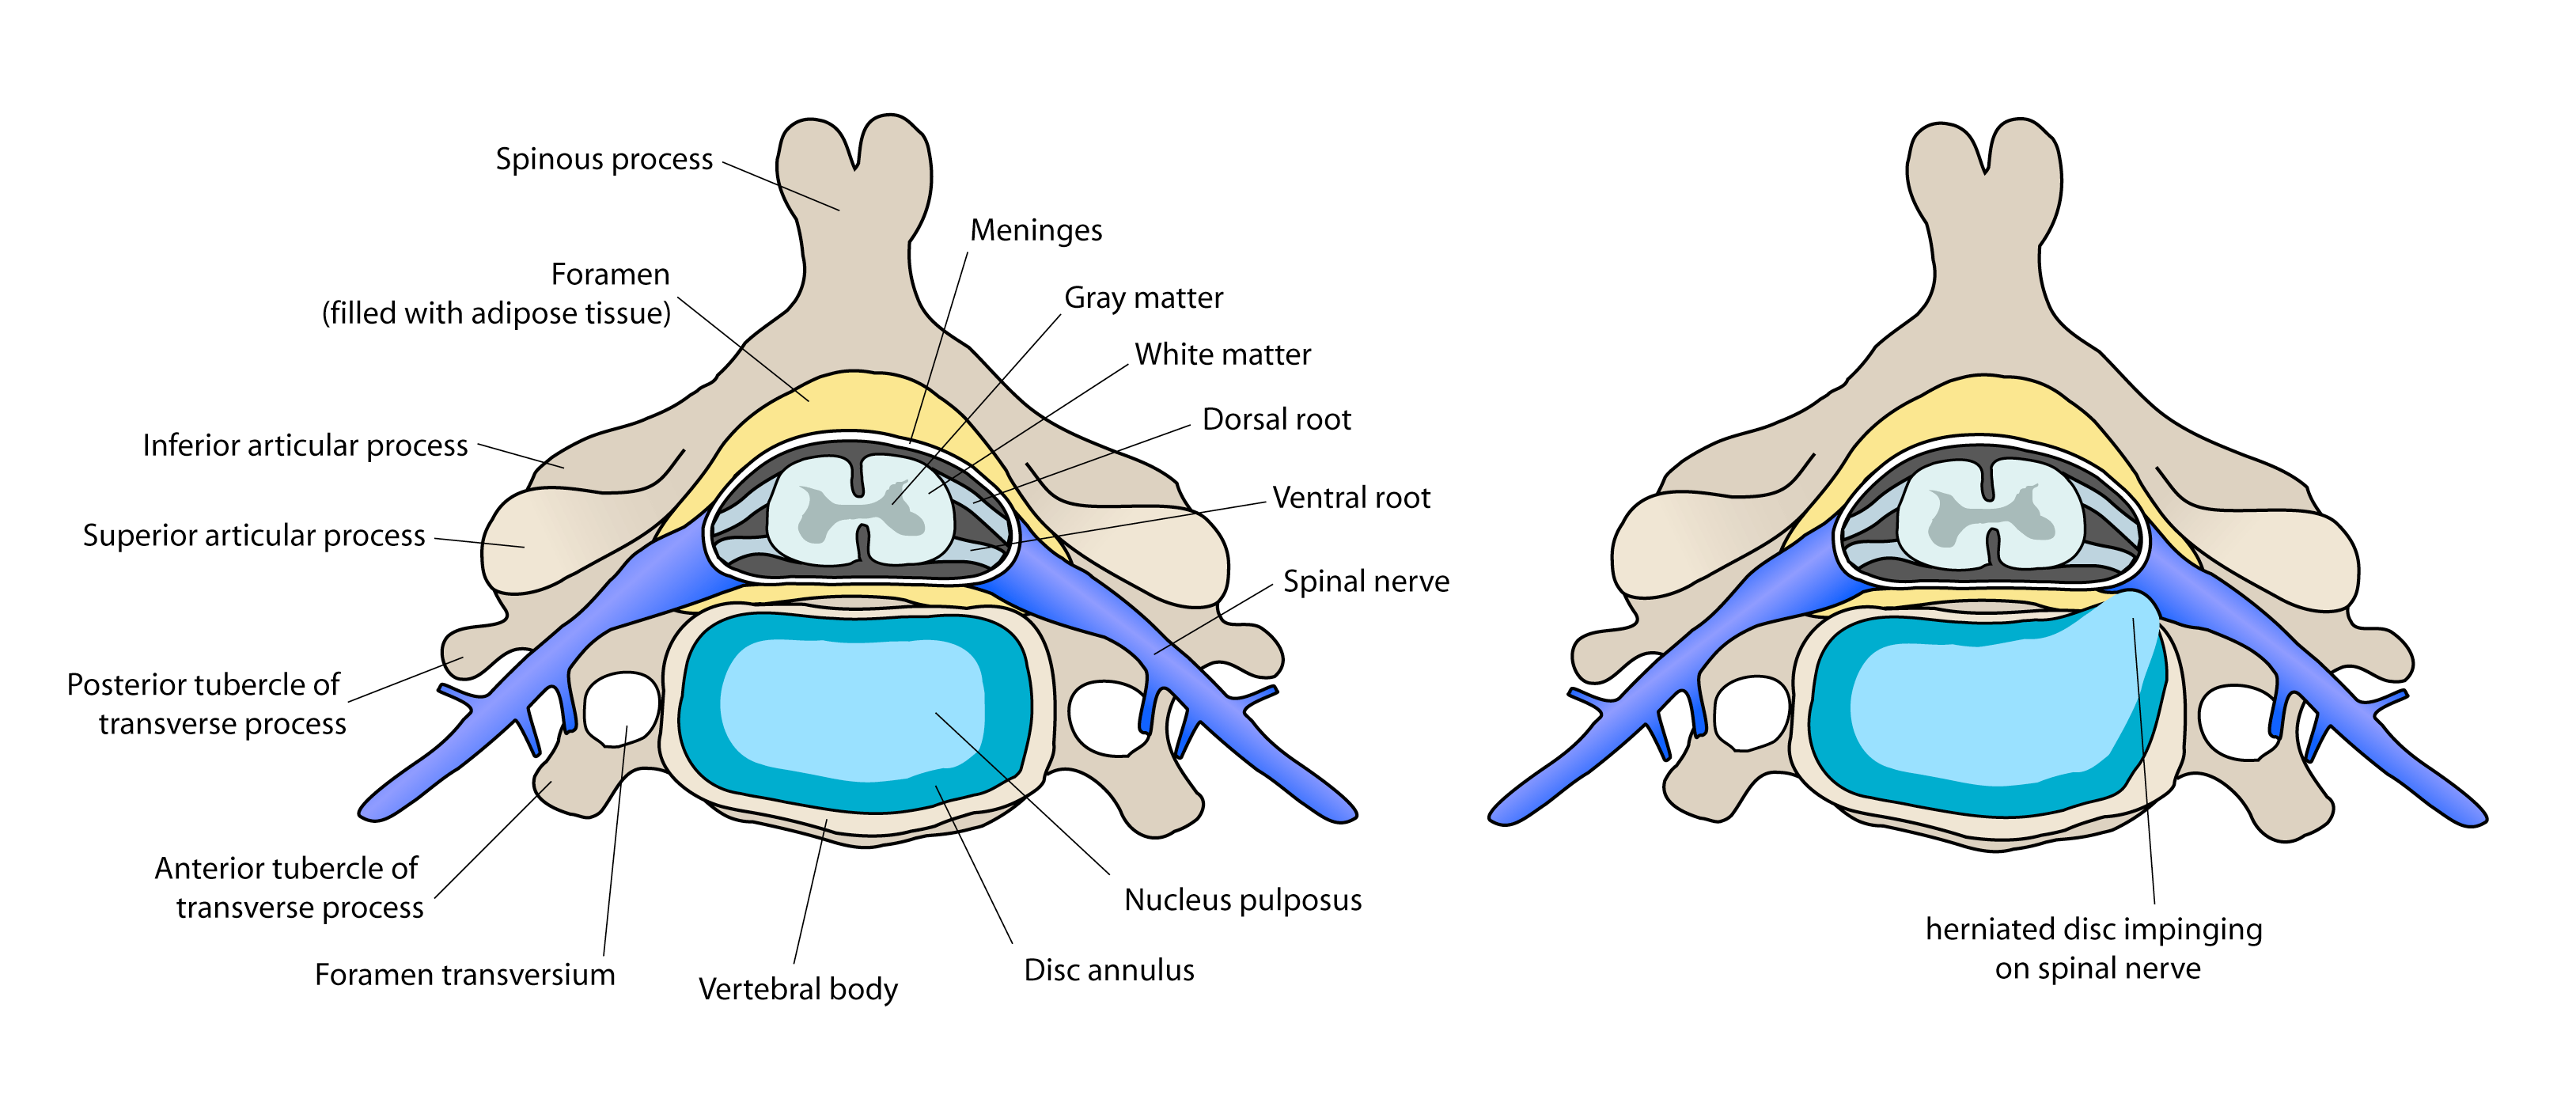 Prolapsed Disc Drawing Diagram